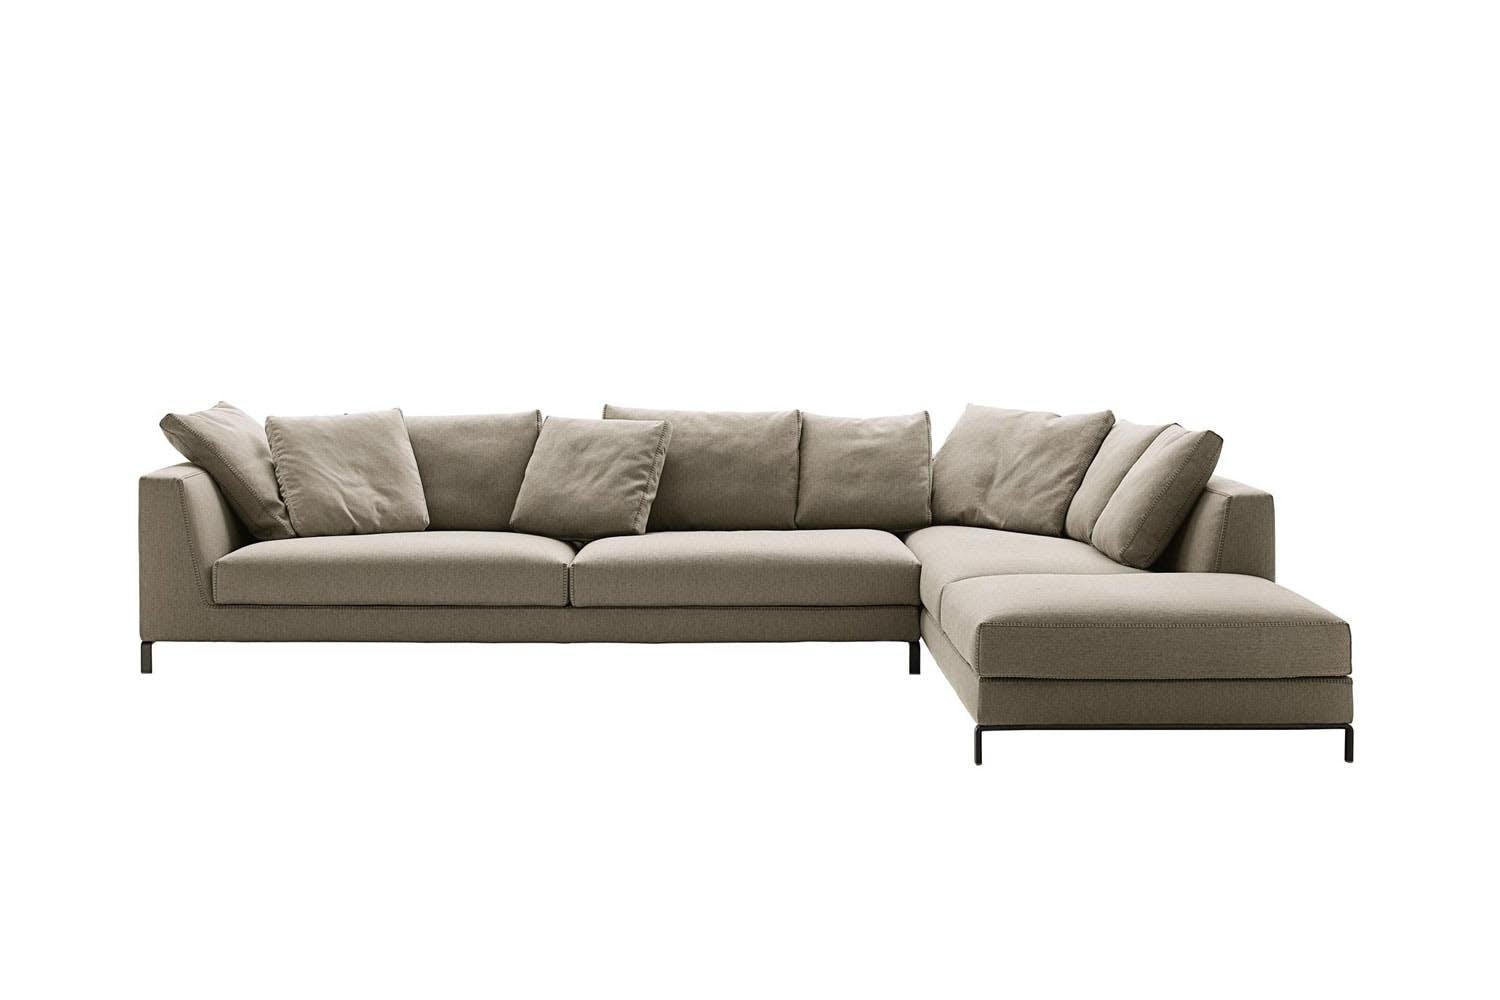 ray sofa by antonio citterio for b b italia space furniture